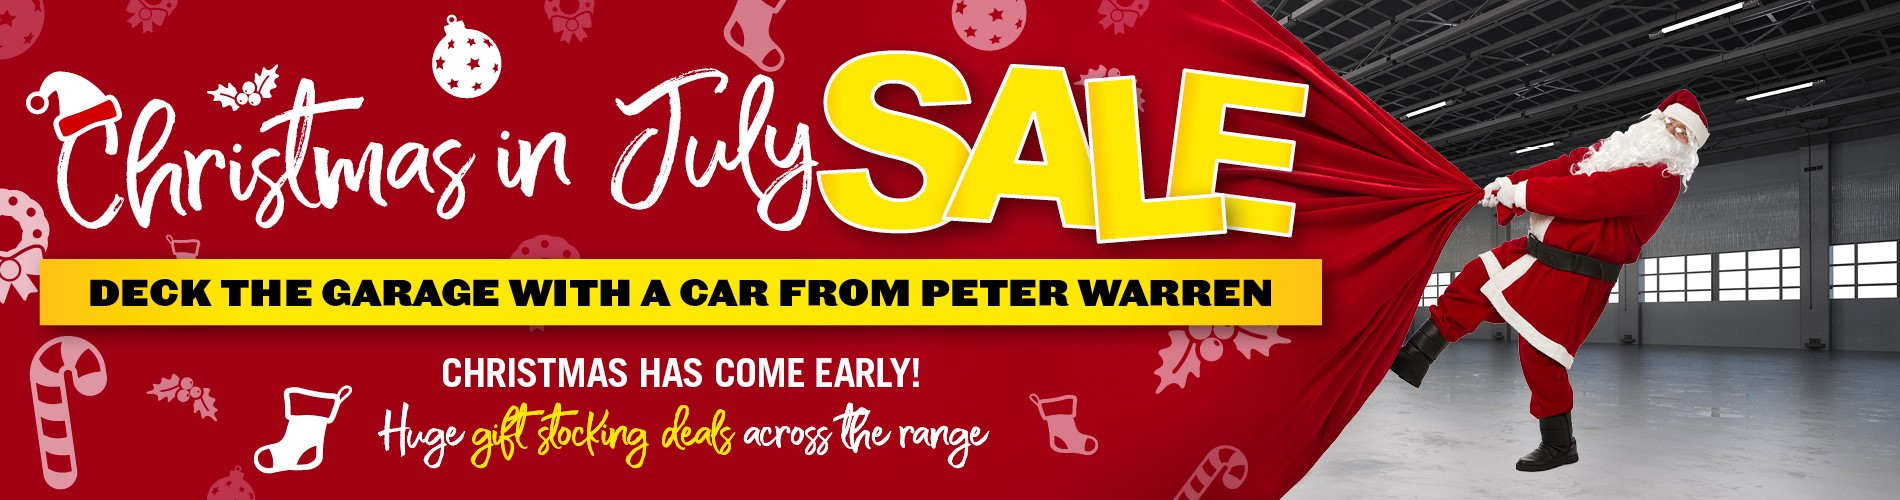 Peter Warren Christmas in July Sale